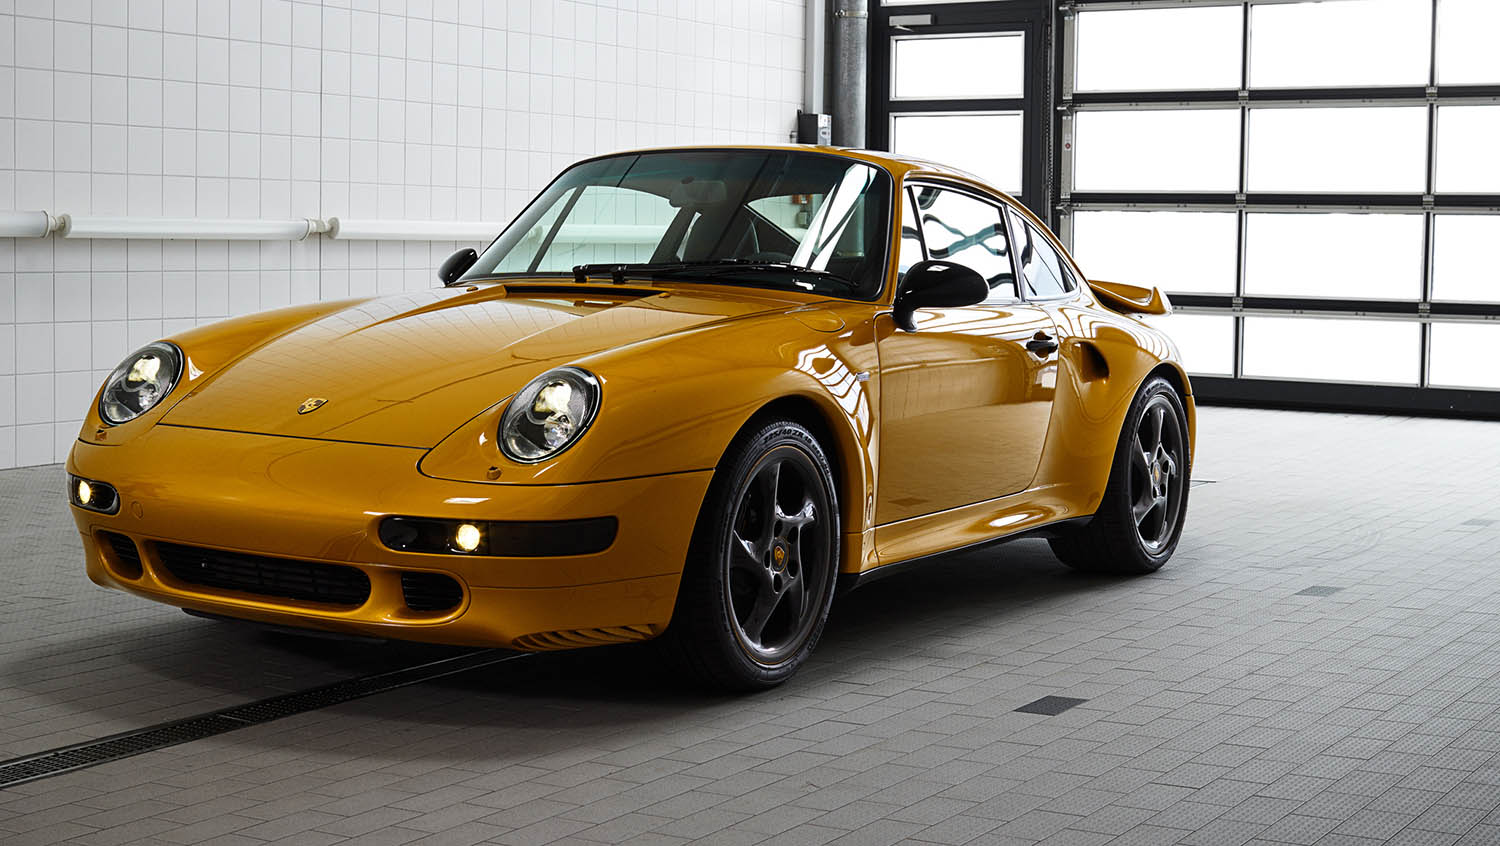 2018-Porsche-911-Turbo--Classic-Series-Project-Gold-_0.jpg